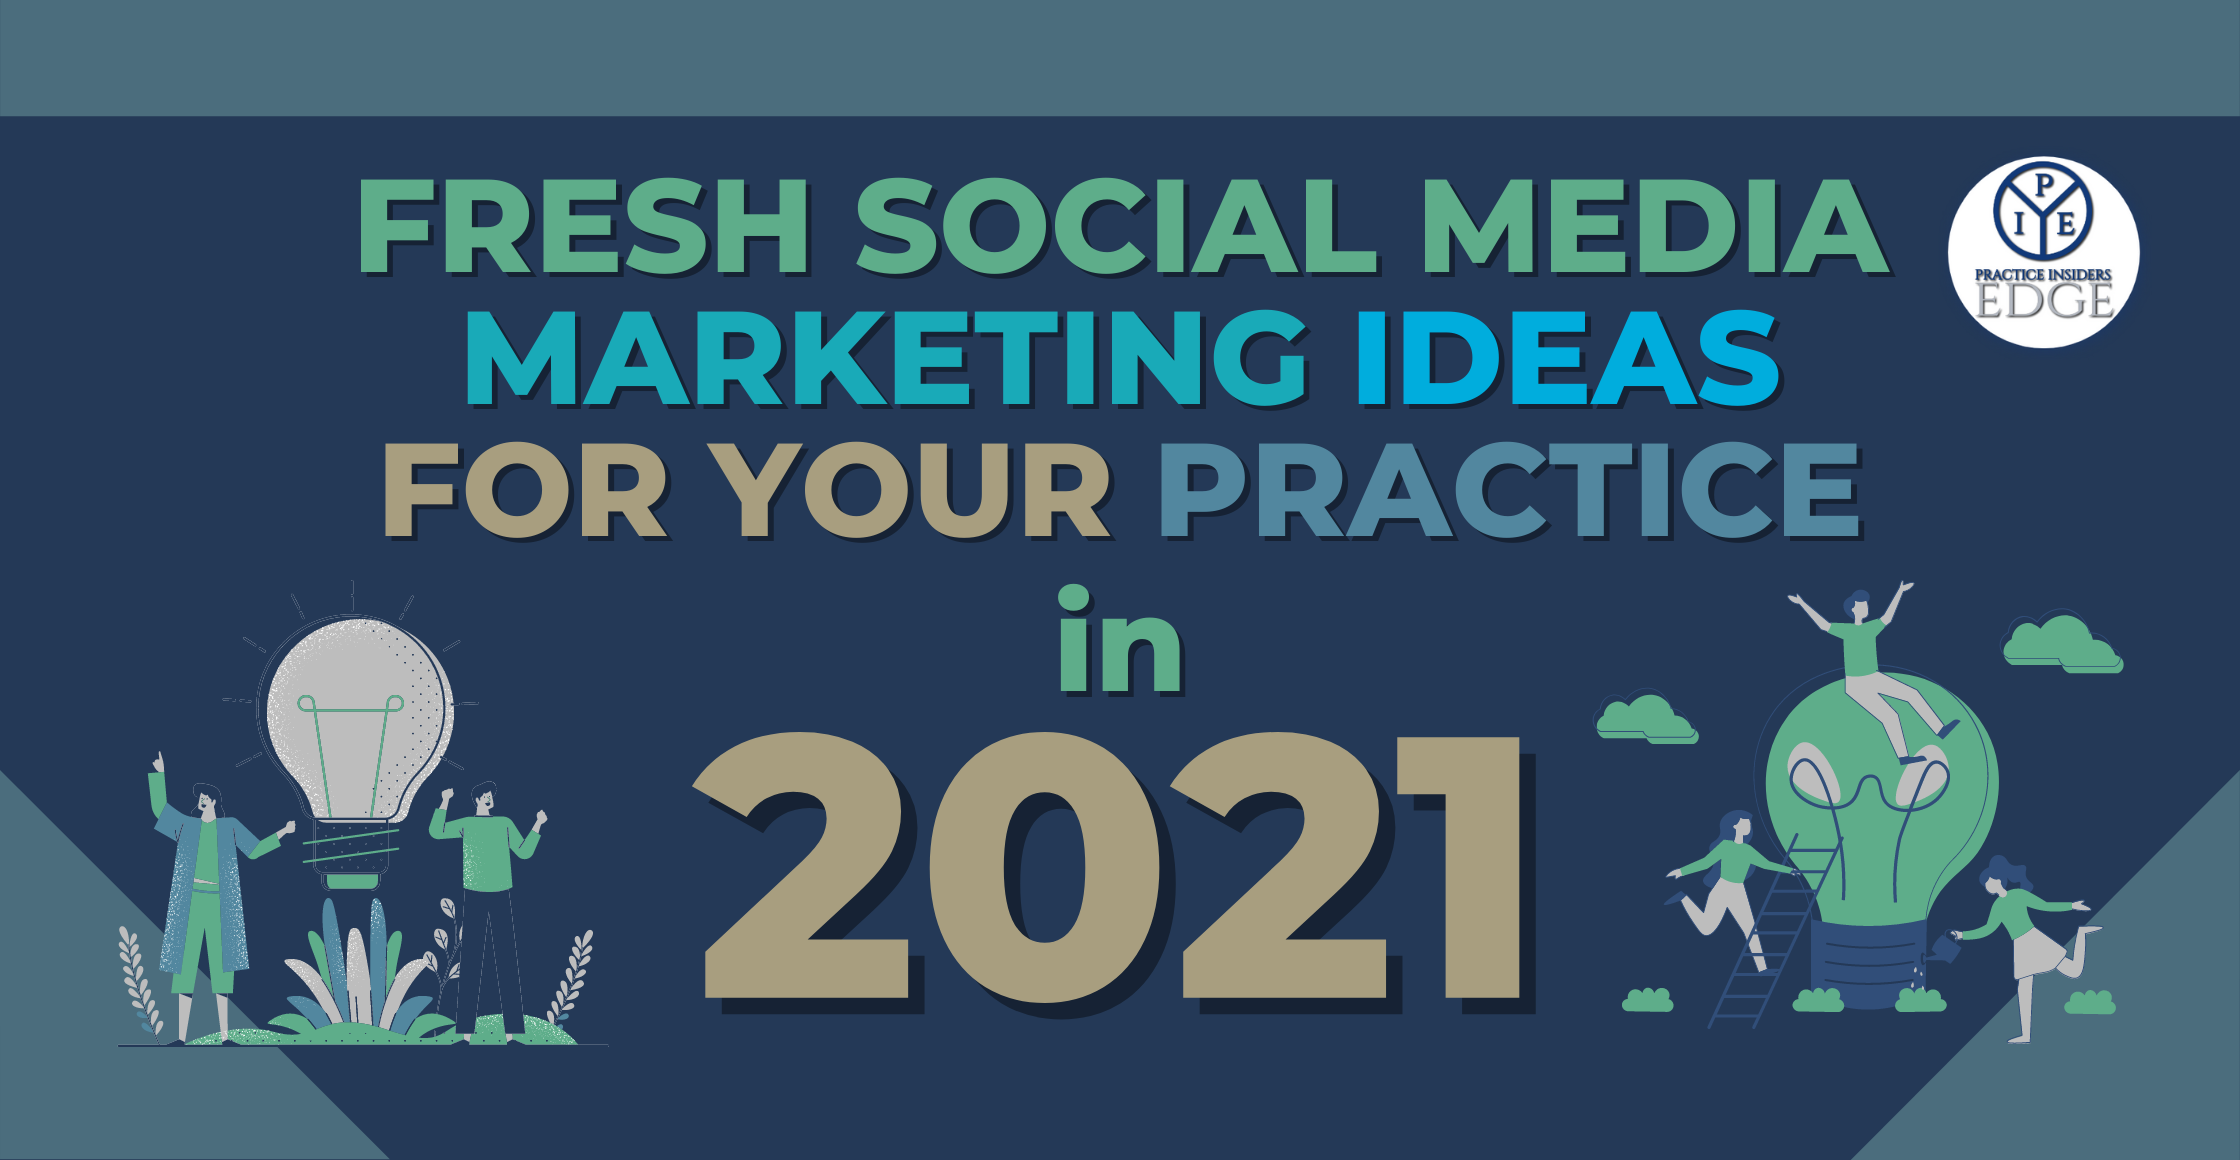 Fresh Social Media Marketing Ideas For Your Practice in 2021